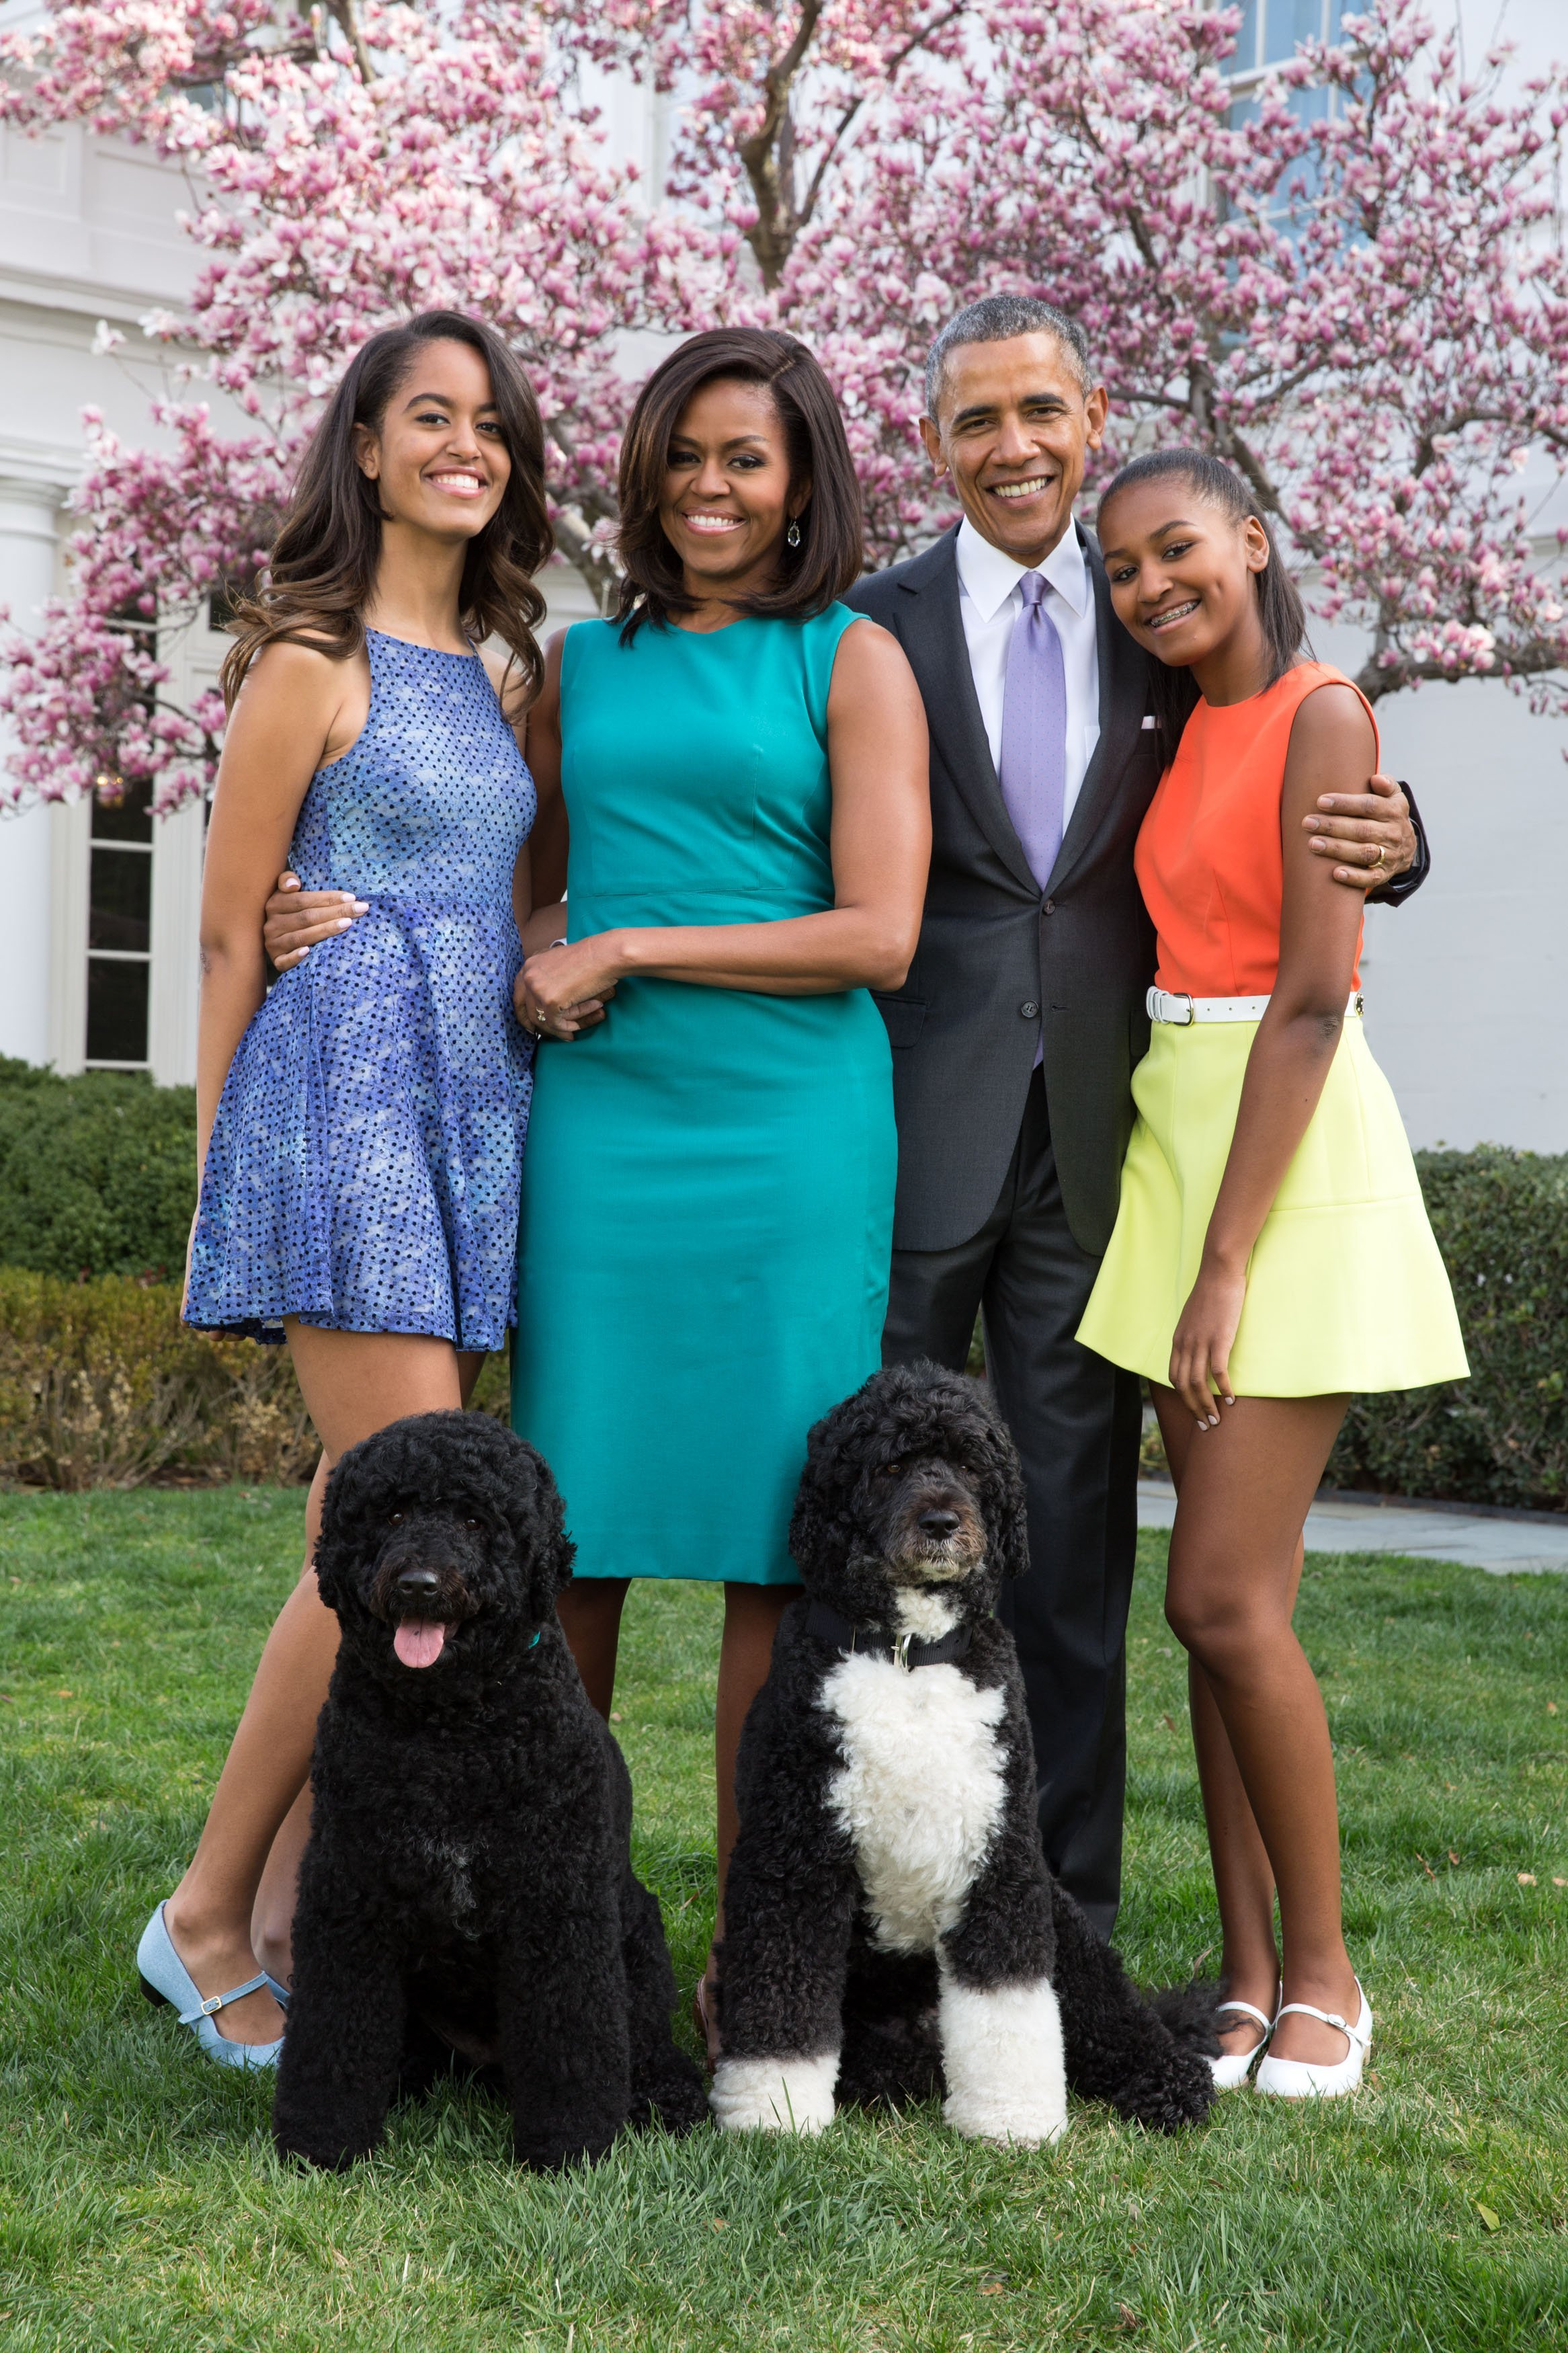 Barack Obama,  Michelle Obama, and daughters Malia and Sasha pose for a family portrait in the Rose Garden of the White House on Easter Sunday, April 5, 2015 | Photo: GettyImages